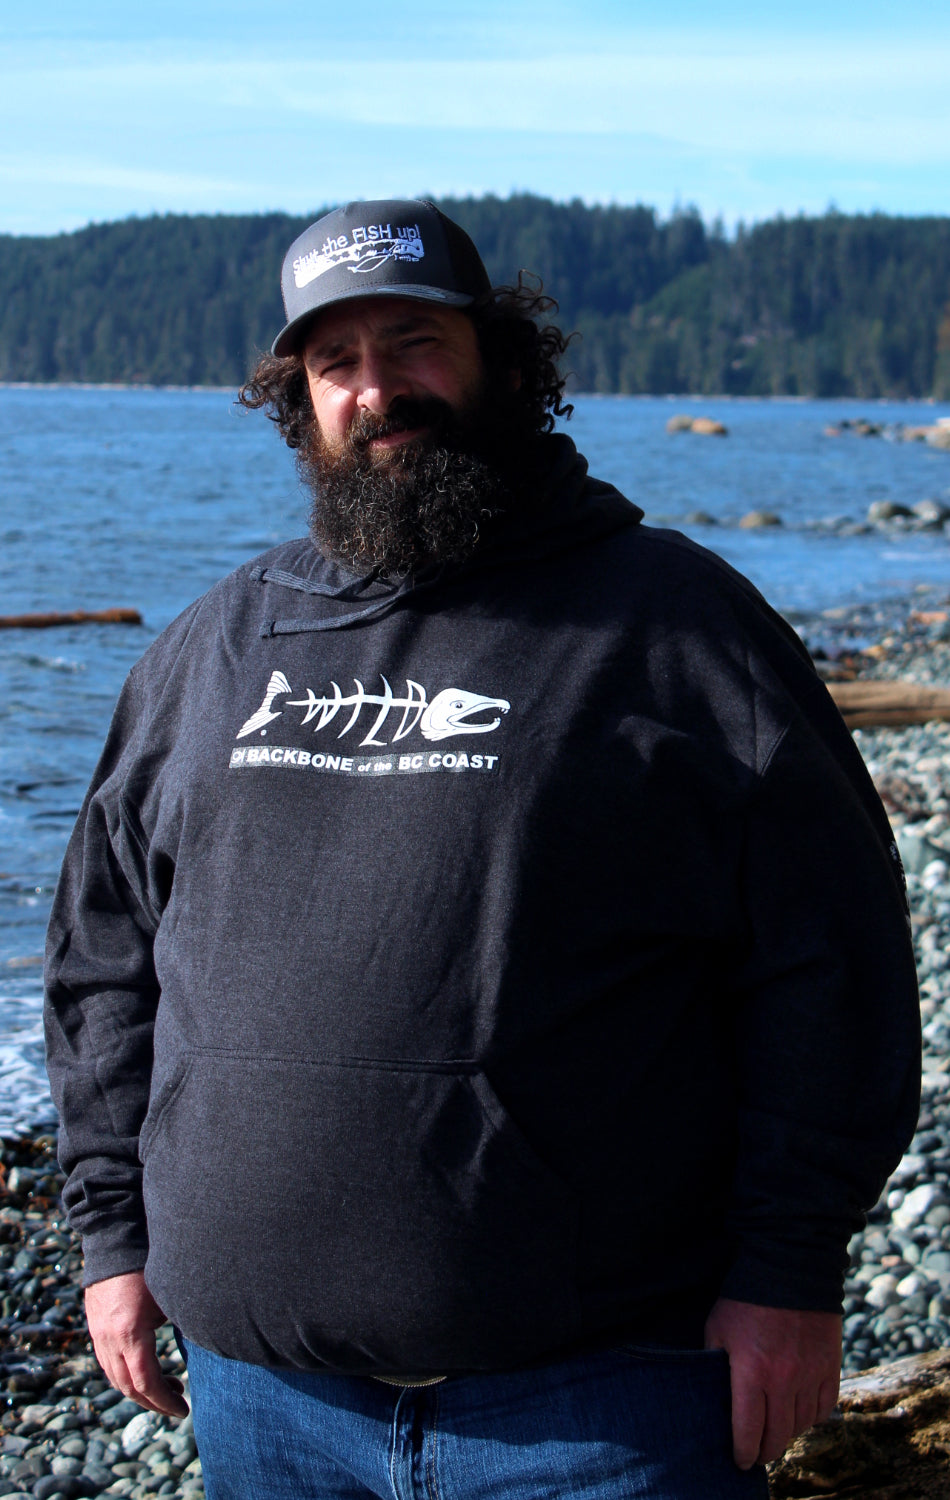 Backbone of the BC Coast Hoodie